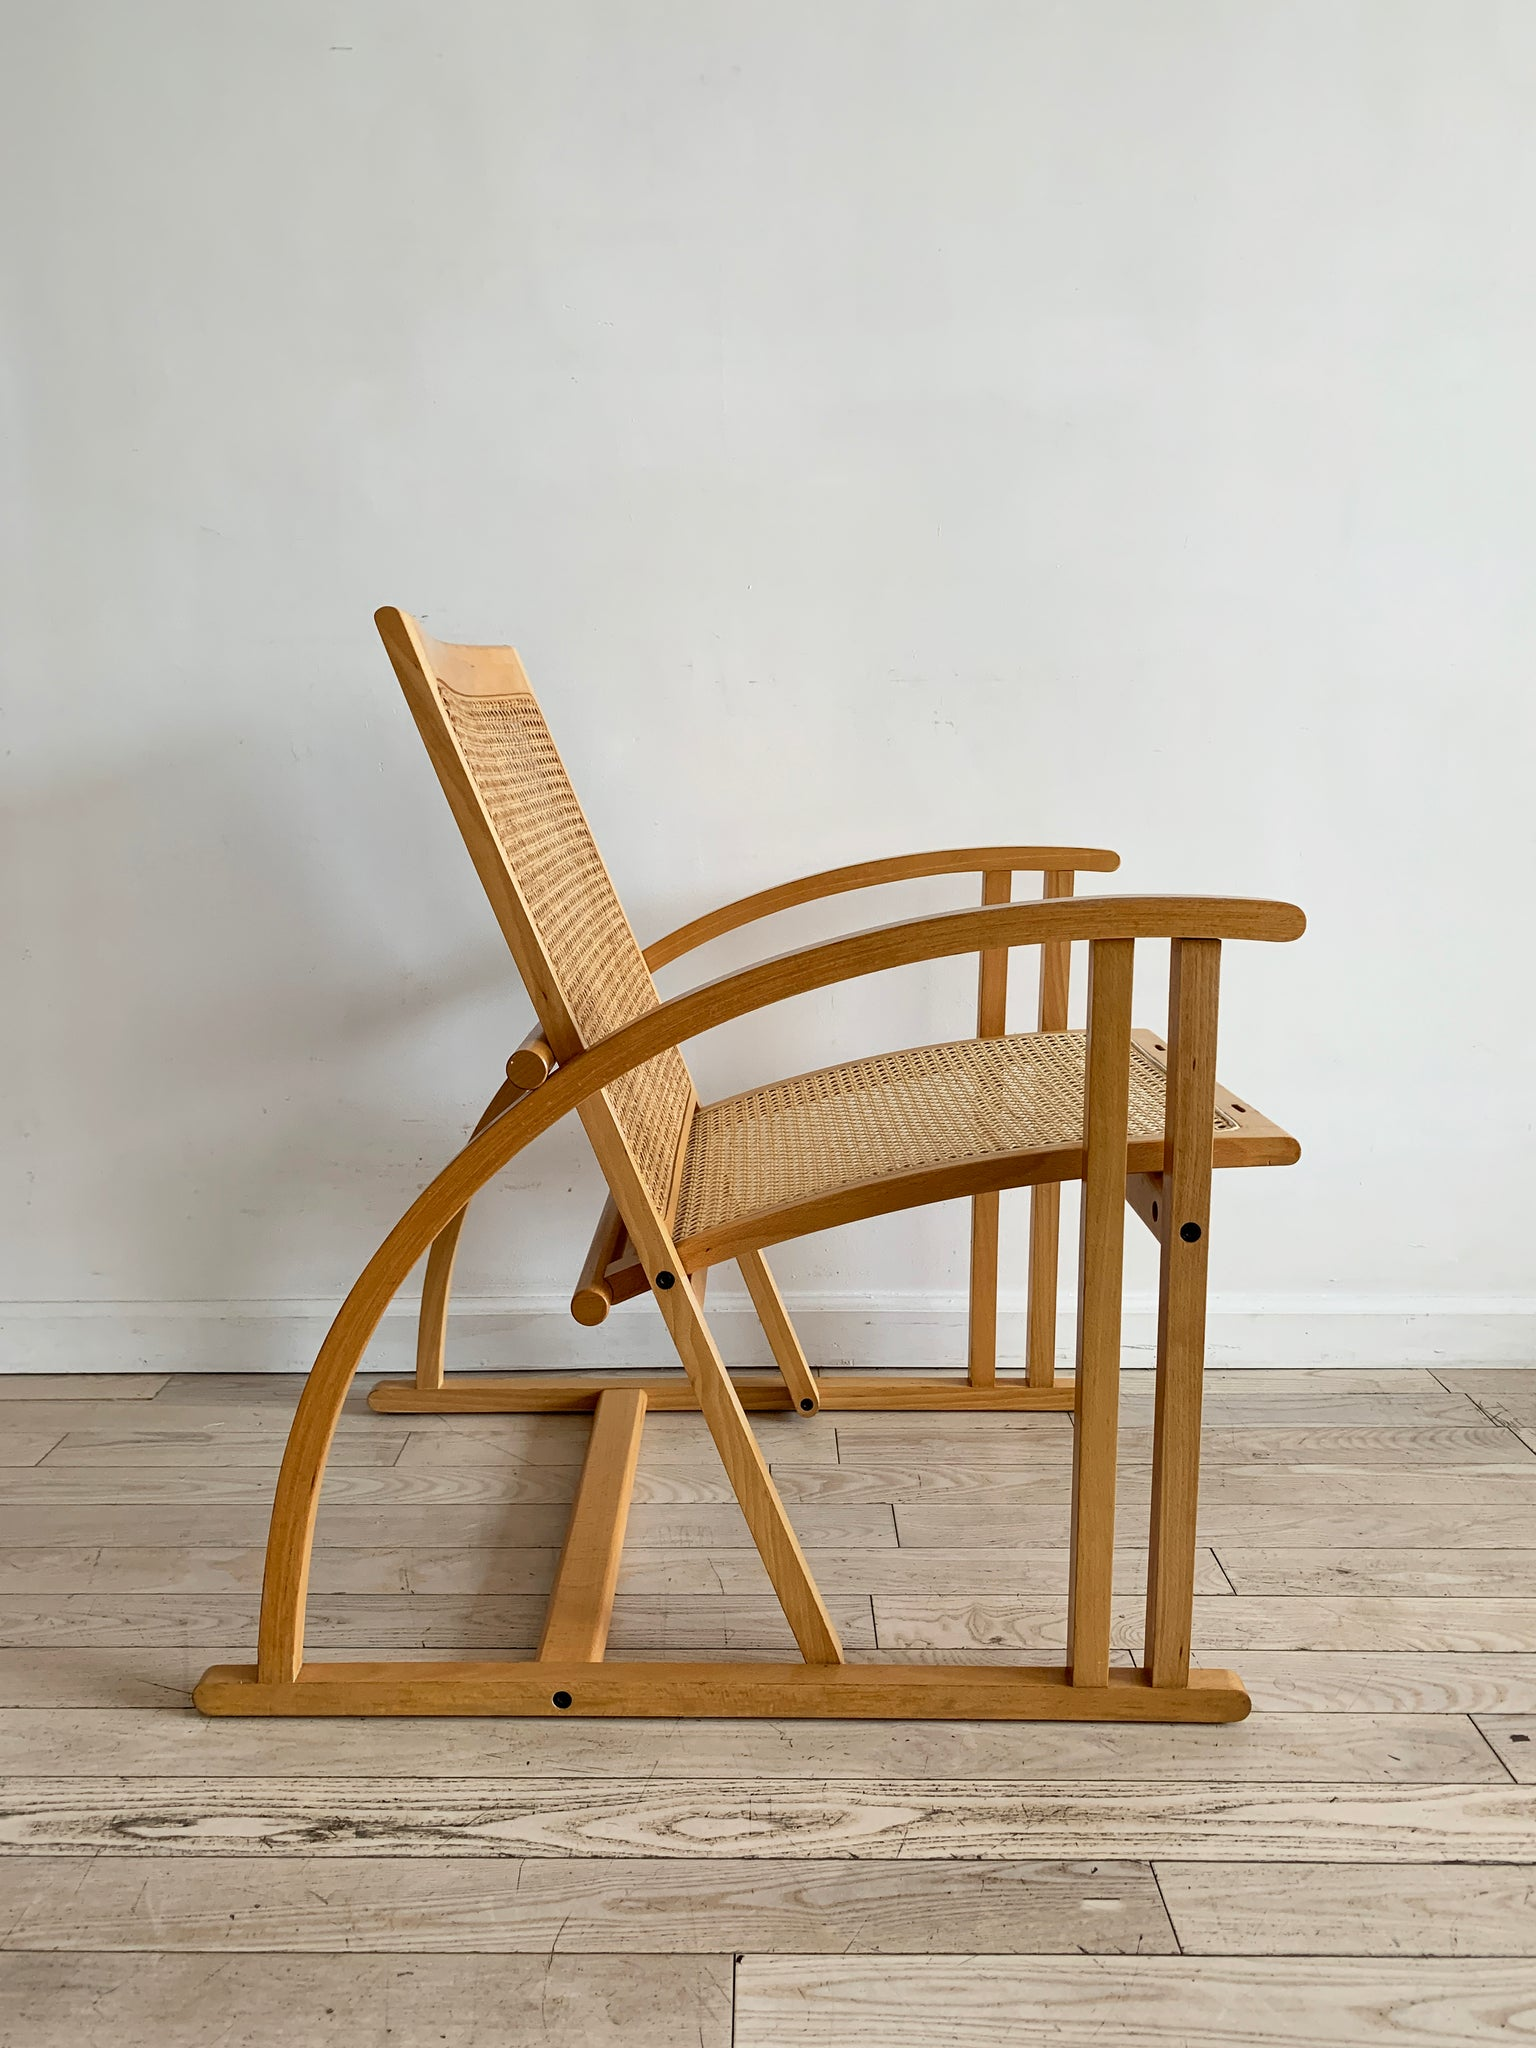 1984 French Beech Wood and Cane Lounge Chair by Pascal Mourgue